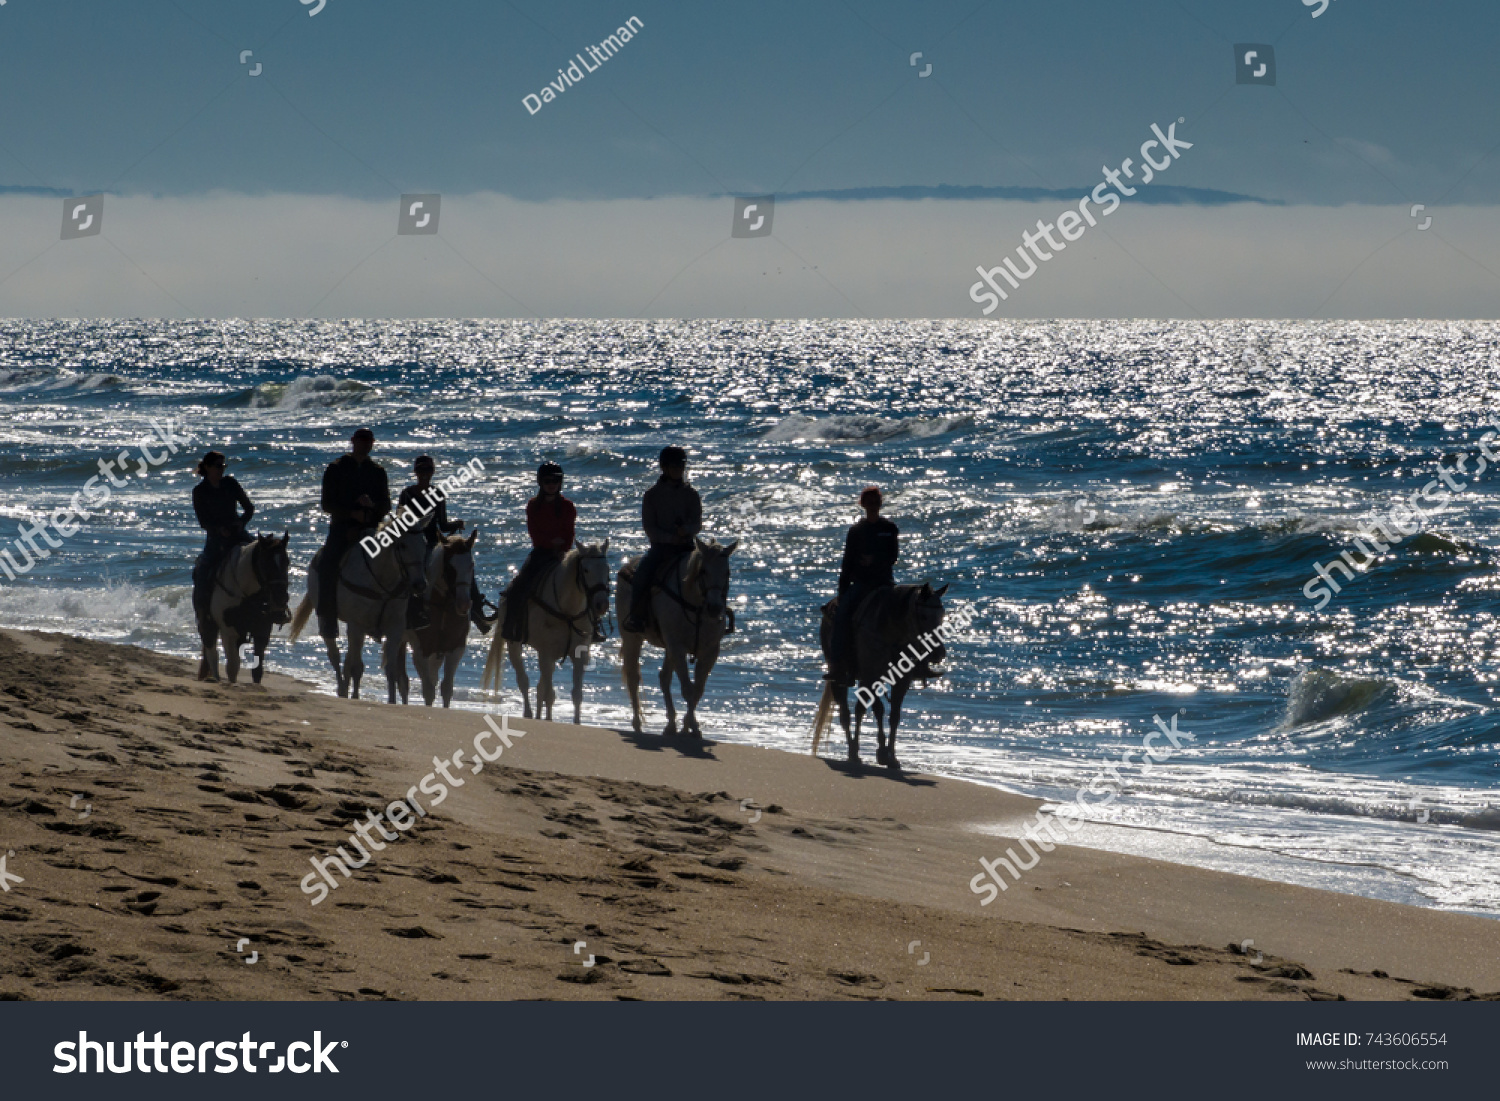 A group of people ride horse back (horseback) late in the afternoon, as a fog bank rolls in, along a sandy  Pacific coast beach in central California of Monterey Bay.